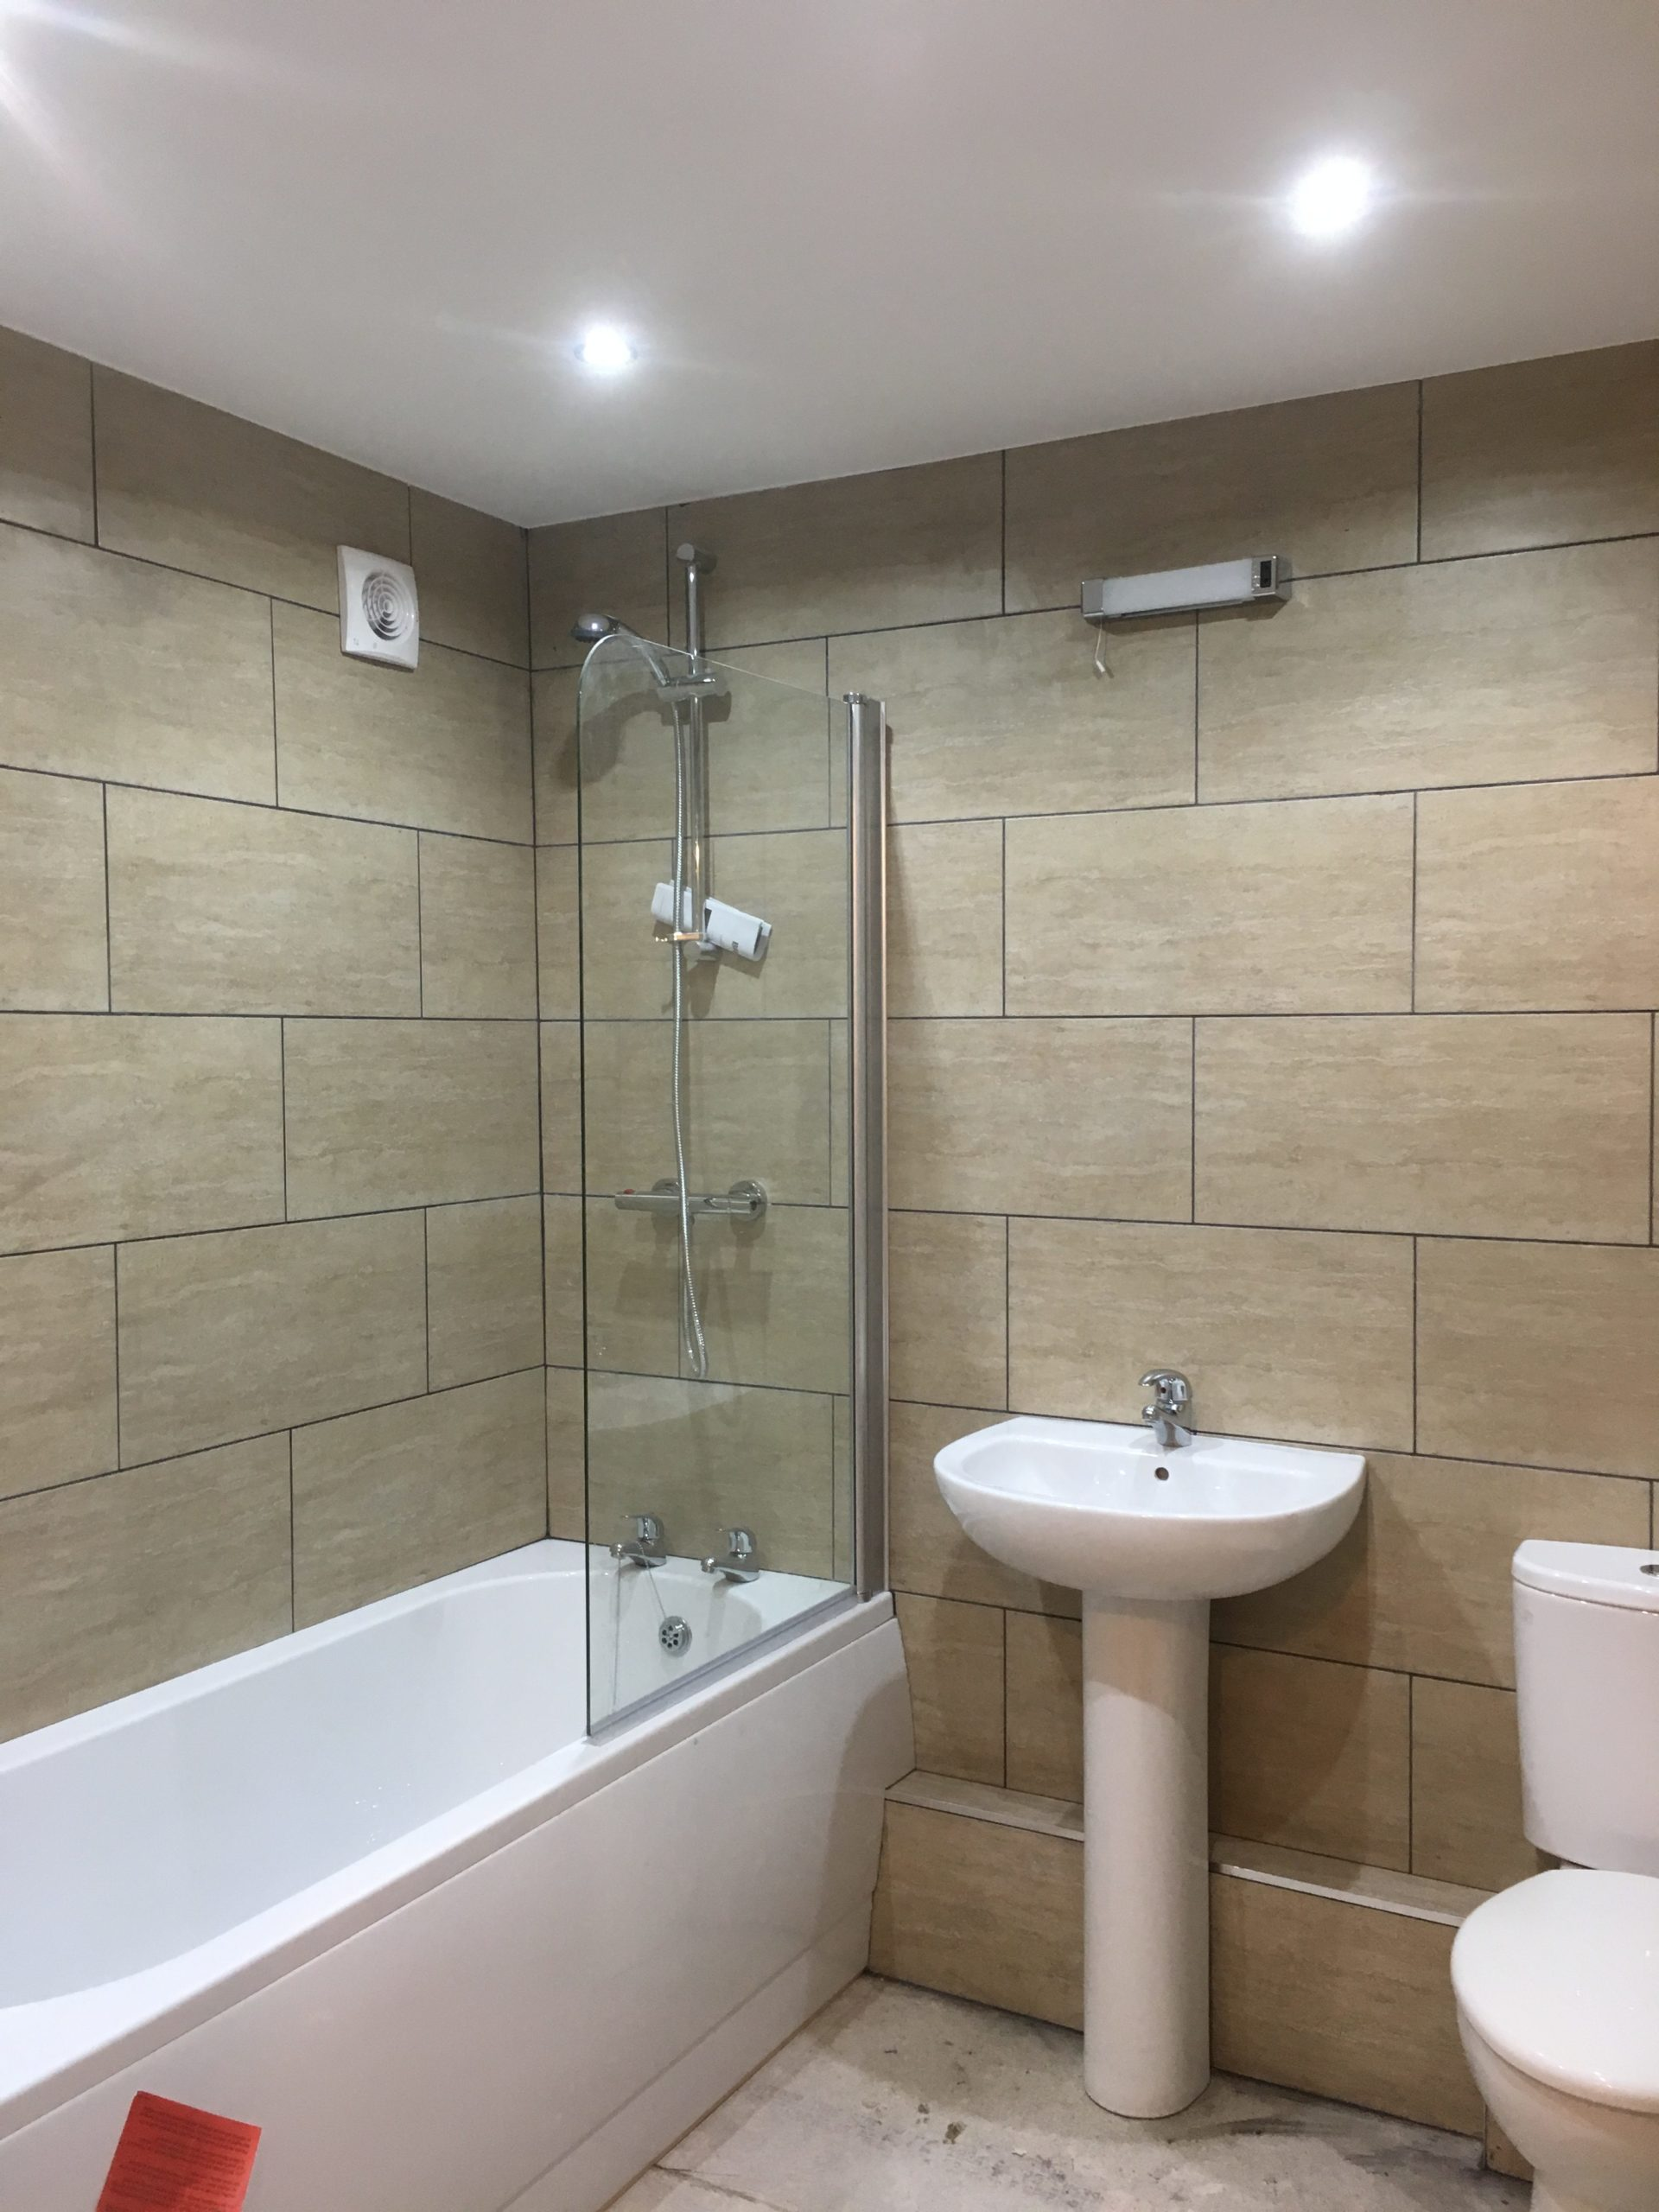 Before image of bathroom in show home designed by Amelia Wilson Interiors Ltd